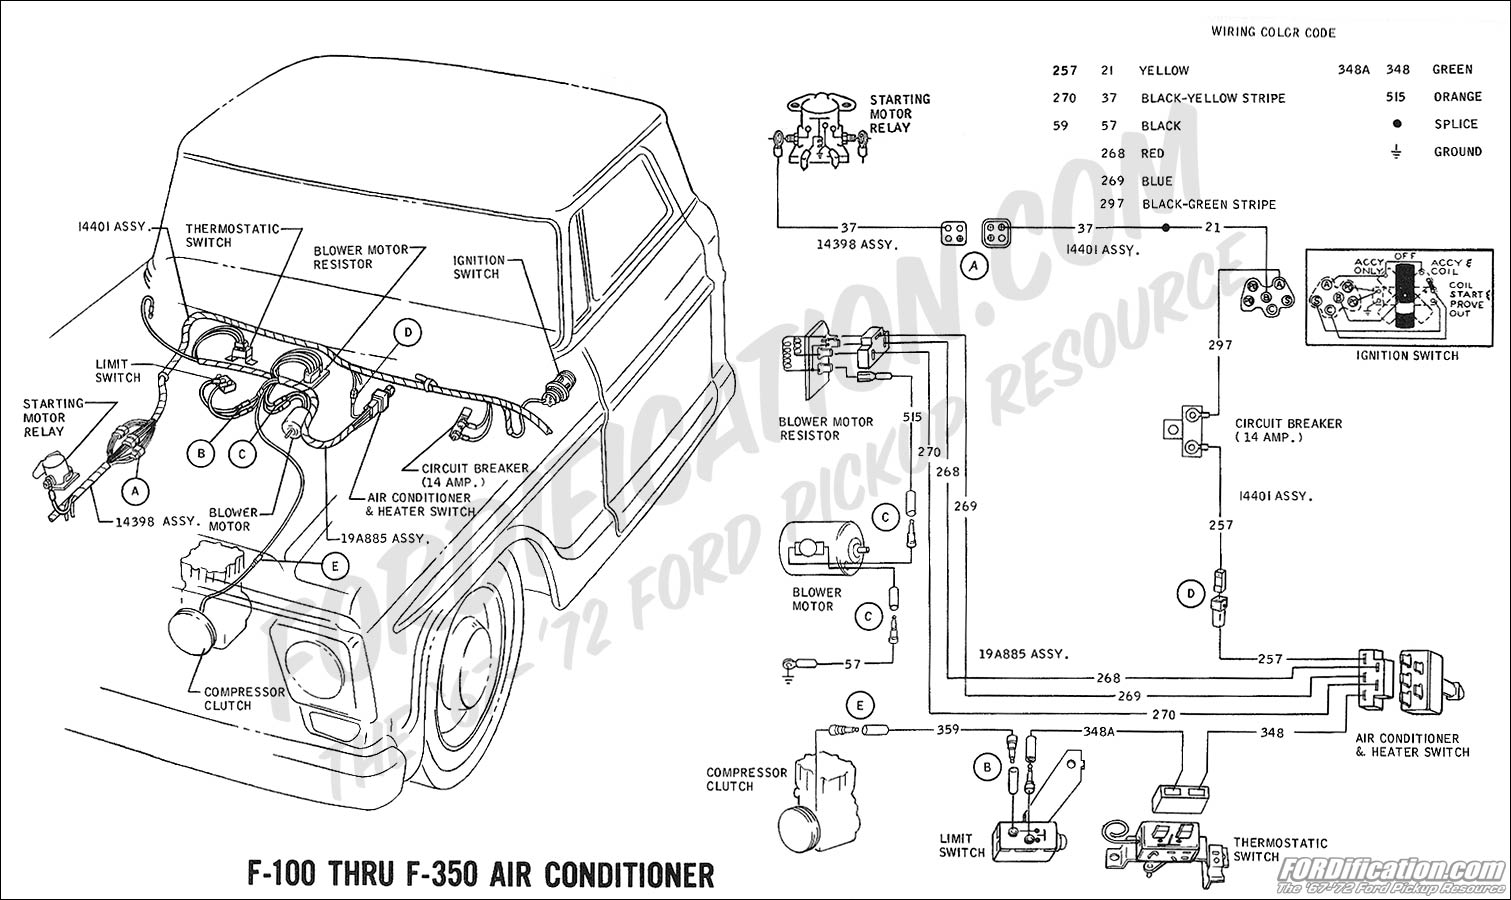 2006 Expedition Ac Diagram Guide And Troubleshooting Of Wiring Ford Trailer Plug System Todays Rh 9 15 1813weddingbarn Com